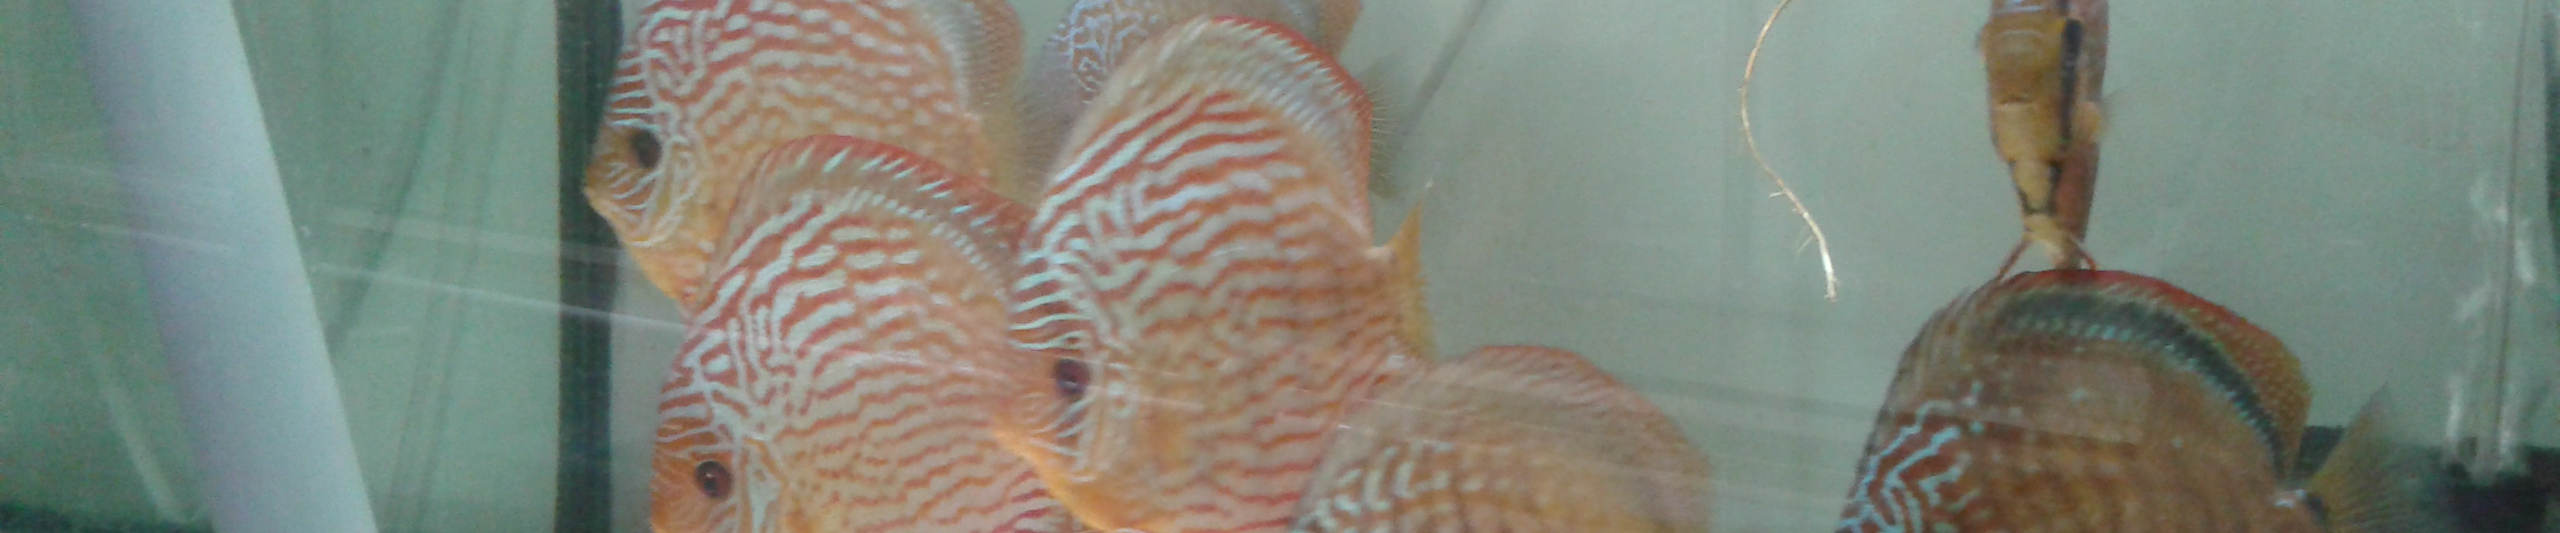 franck-fishroom-discus & co